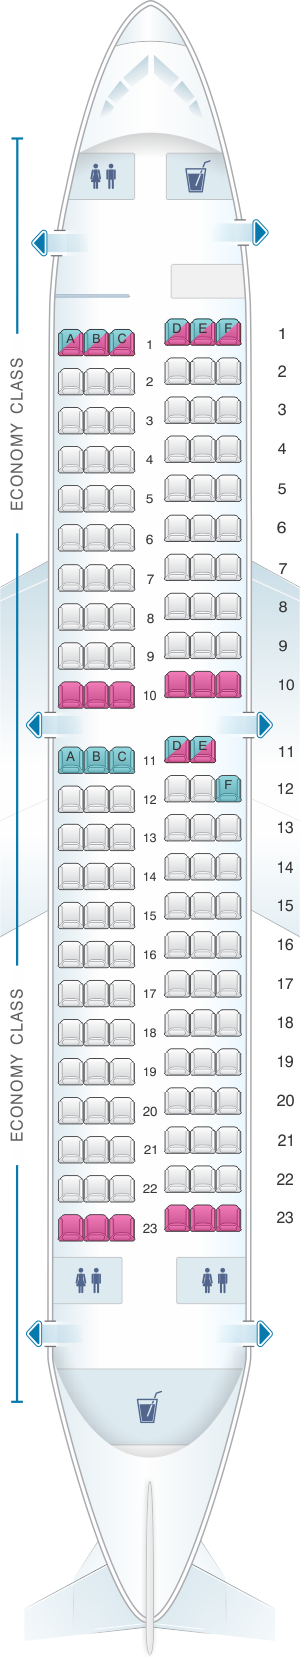 Seat map for Southwest Airlines Boeing B737 700 137pax